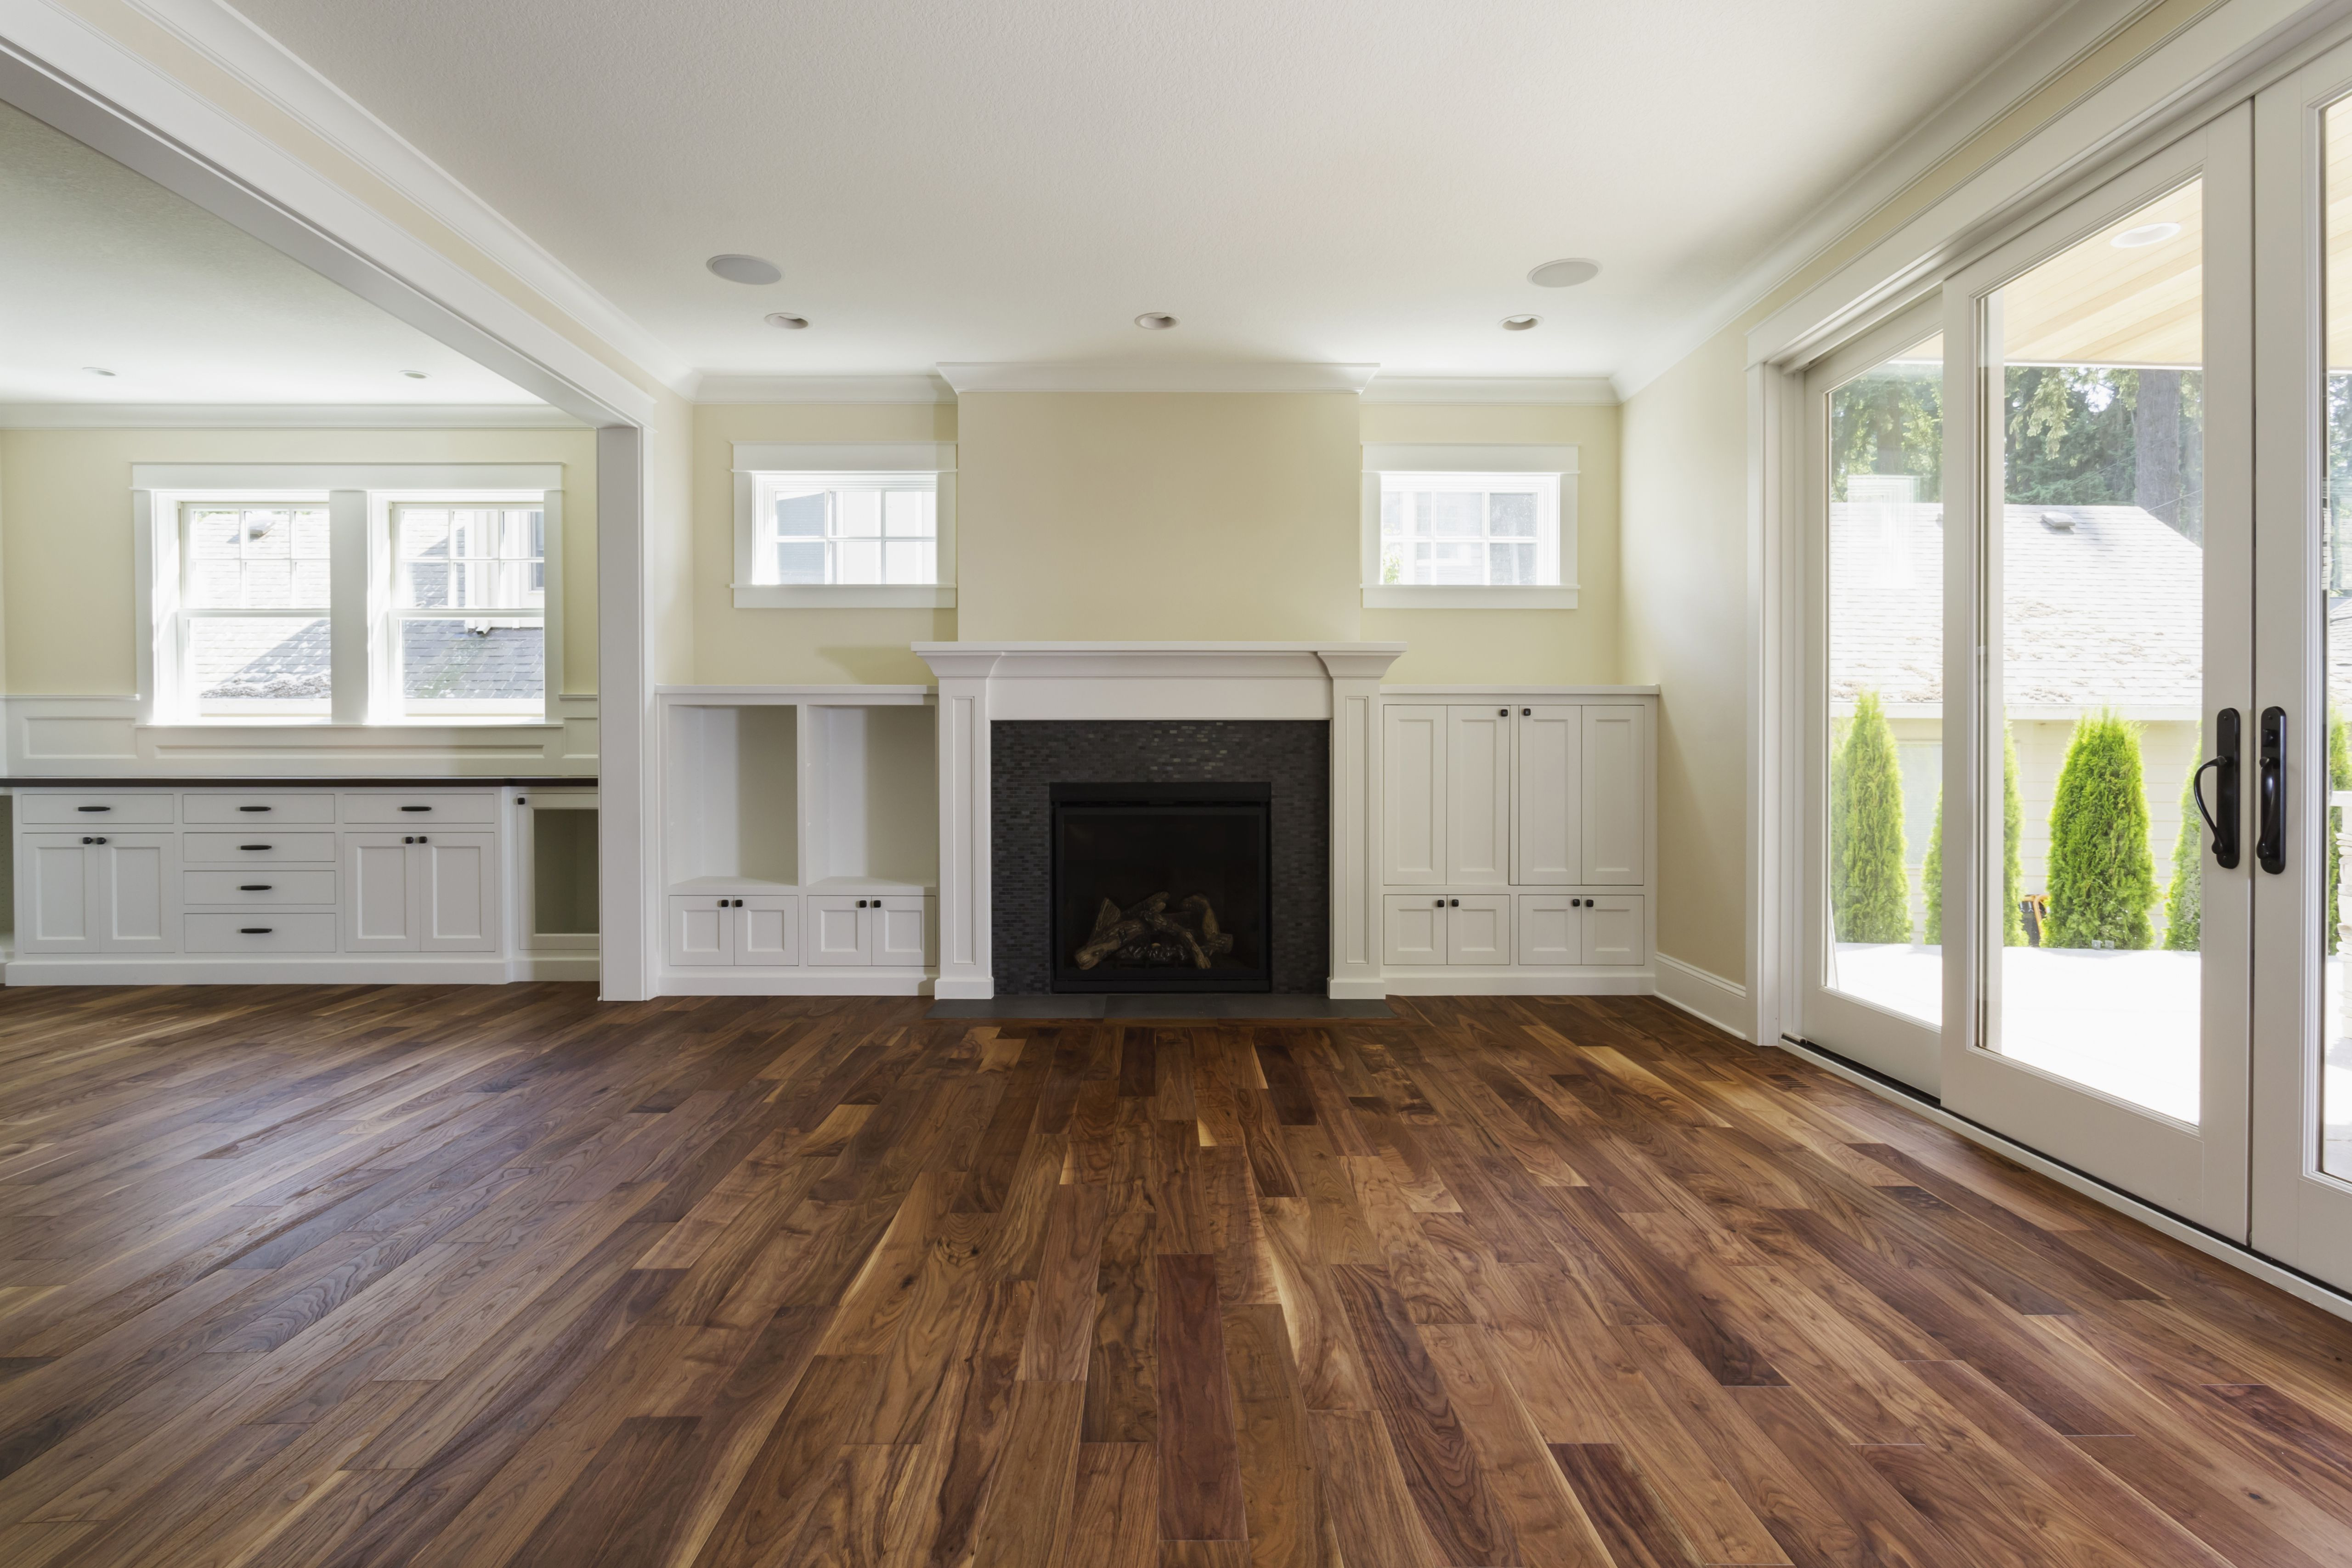 wide plank hardwood flooring canada of the pros and cons of prefinished hardwood flooring with fireplace and built in shelves in living room 482143011 57bef8e33df78cc16e035397